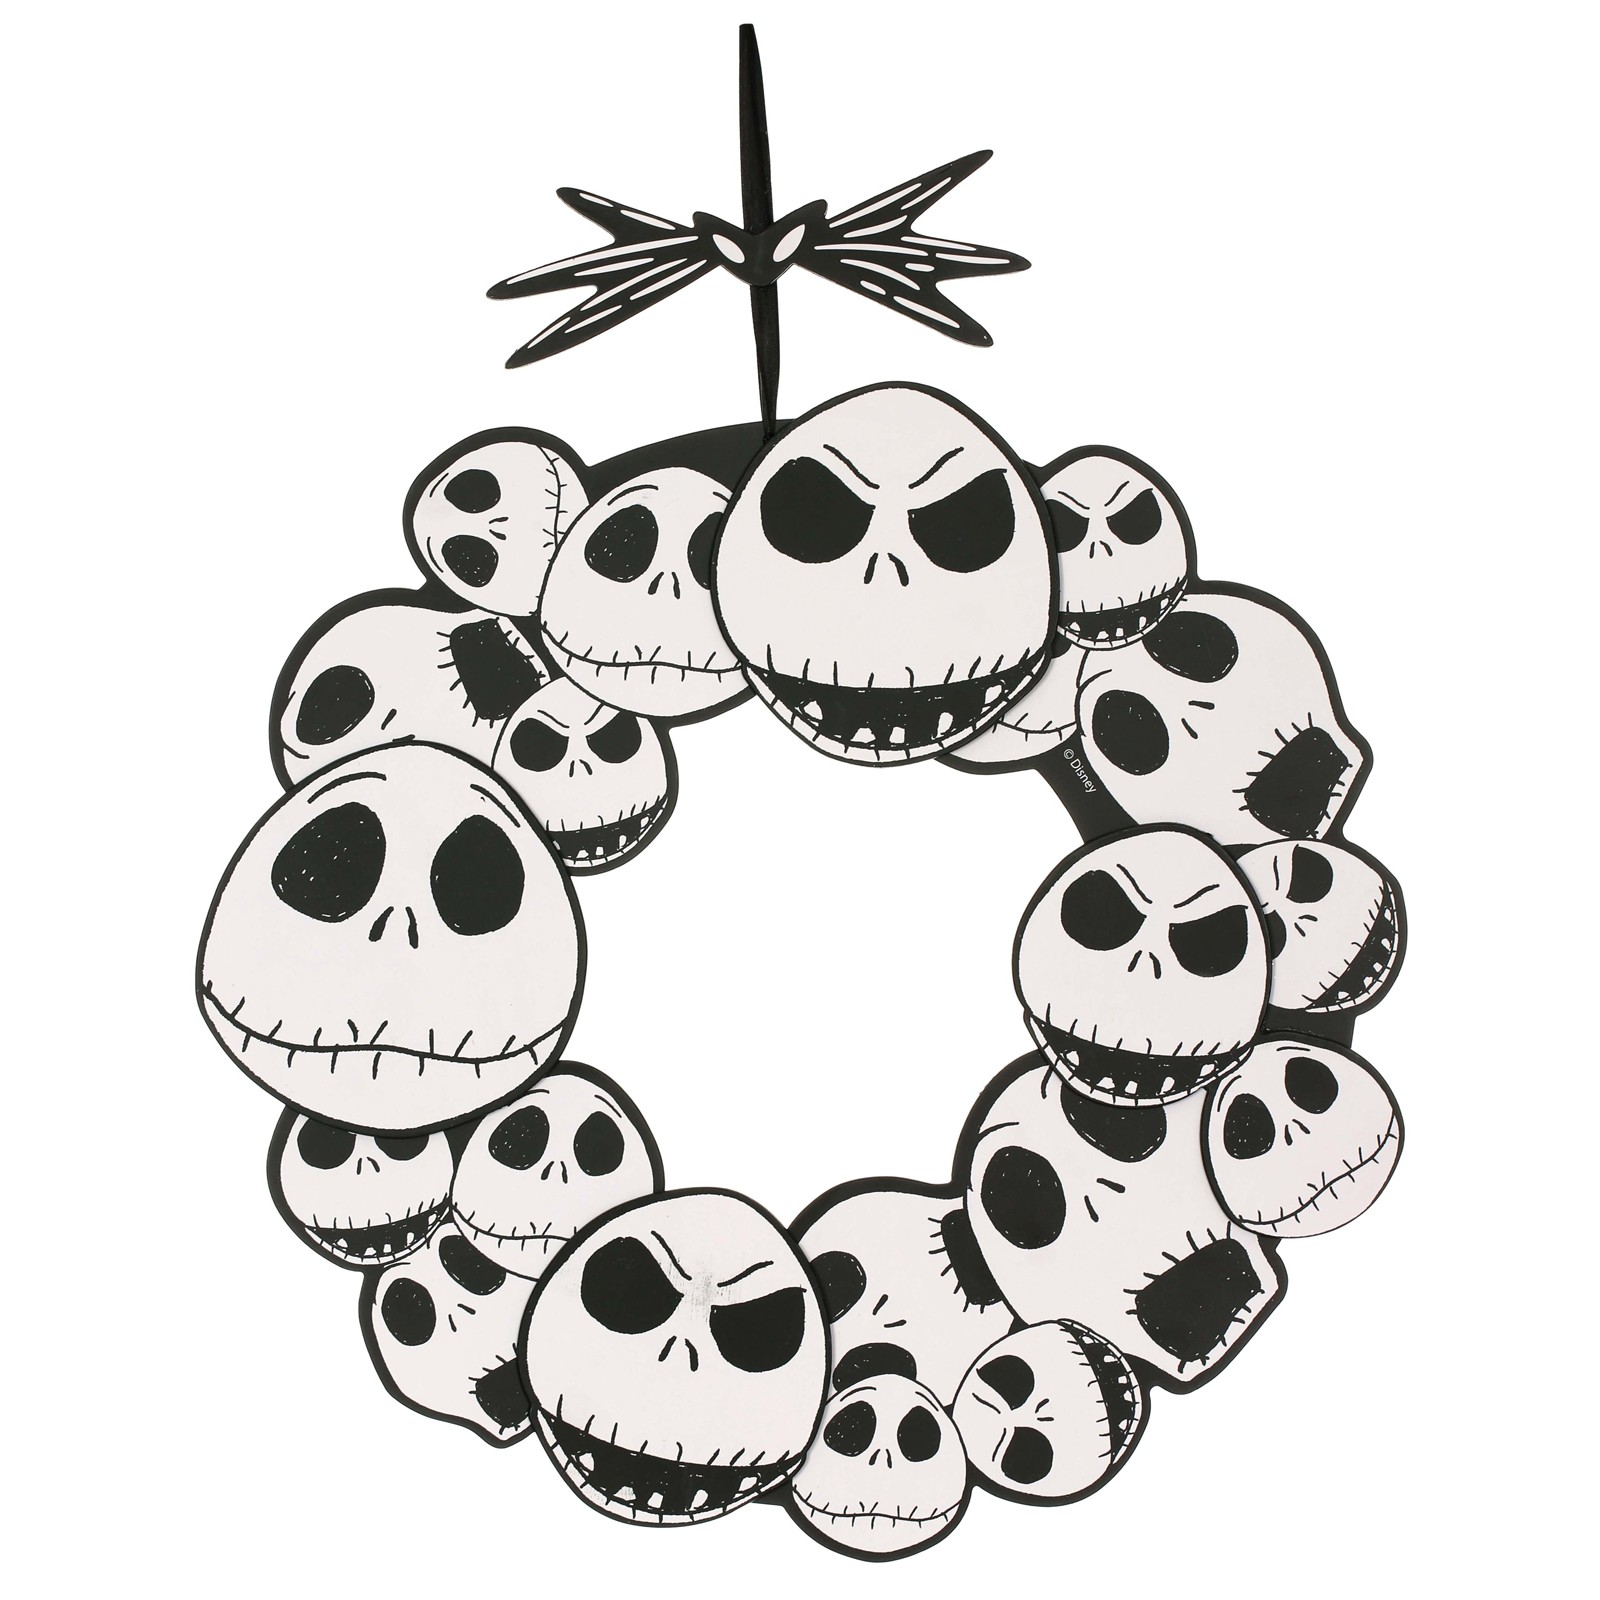 The Nightmare Before Christmas 17 Jack Skellington Wreath Walmart Com Walmart Com